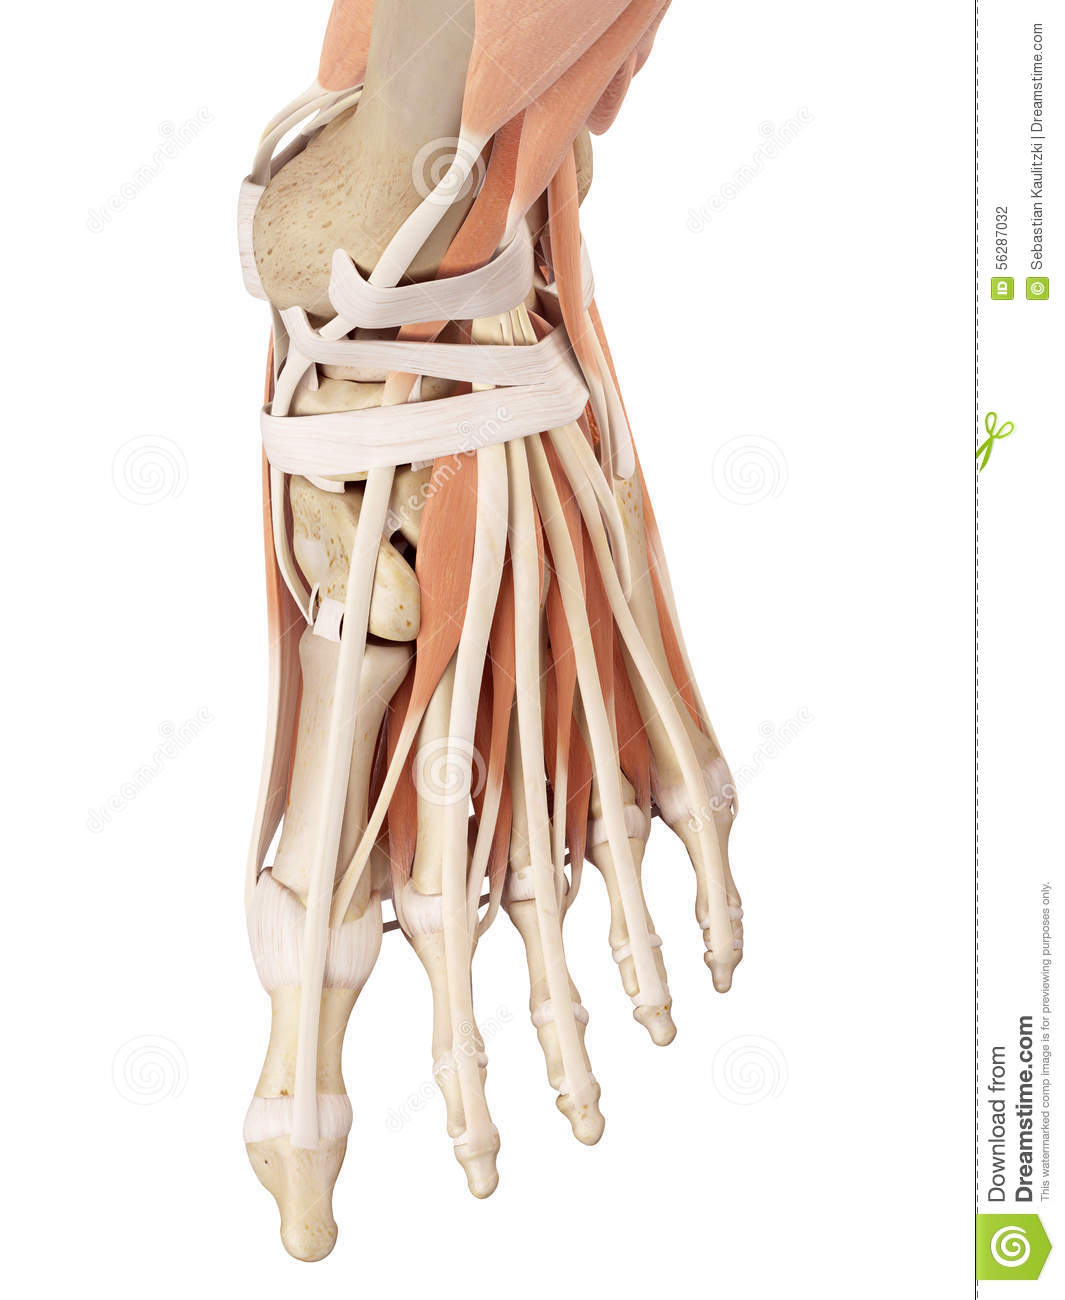 The Foot Muscles Stock Illustration Illustration Of Ankle 56287032